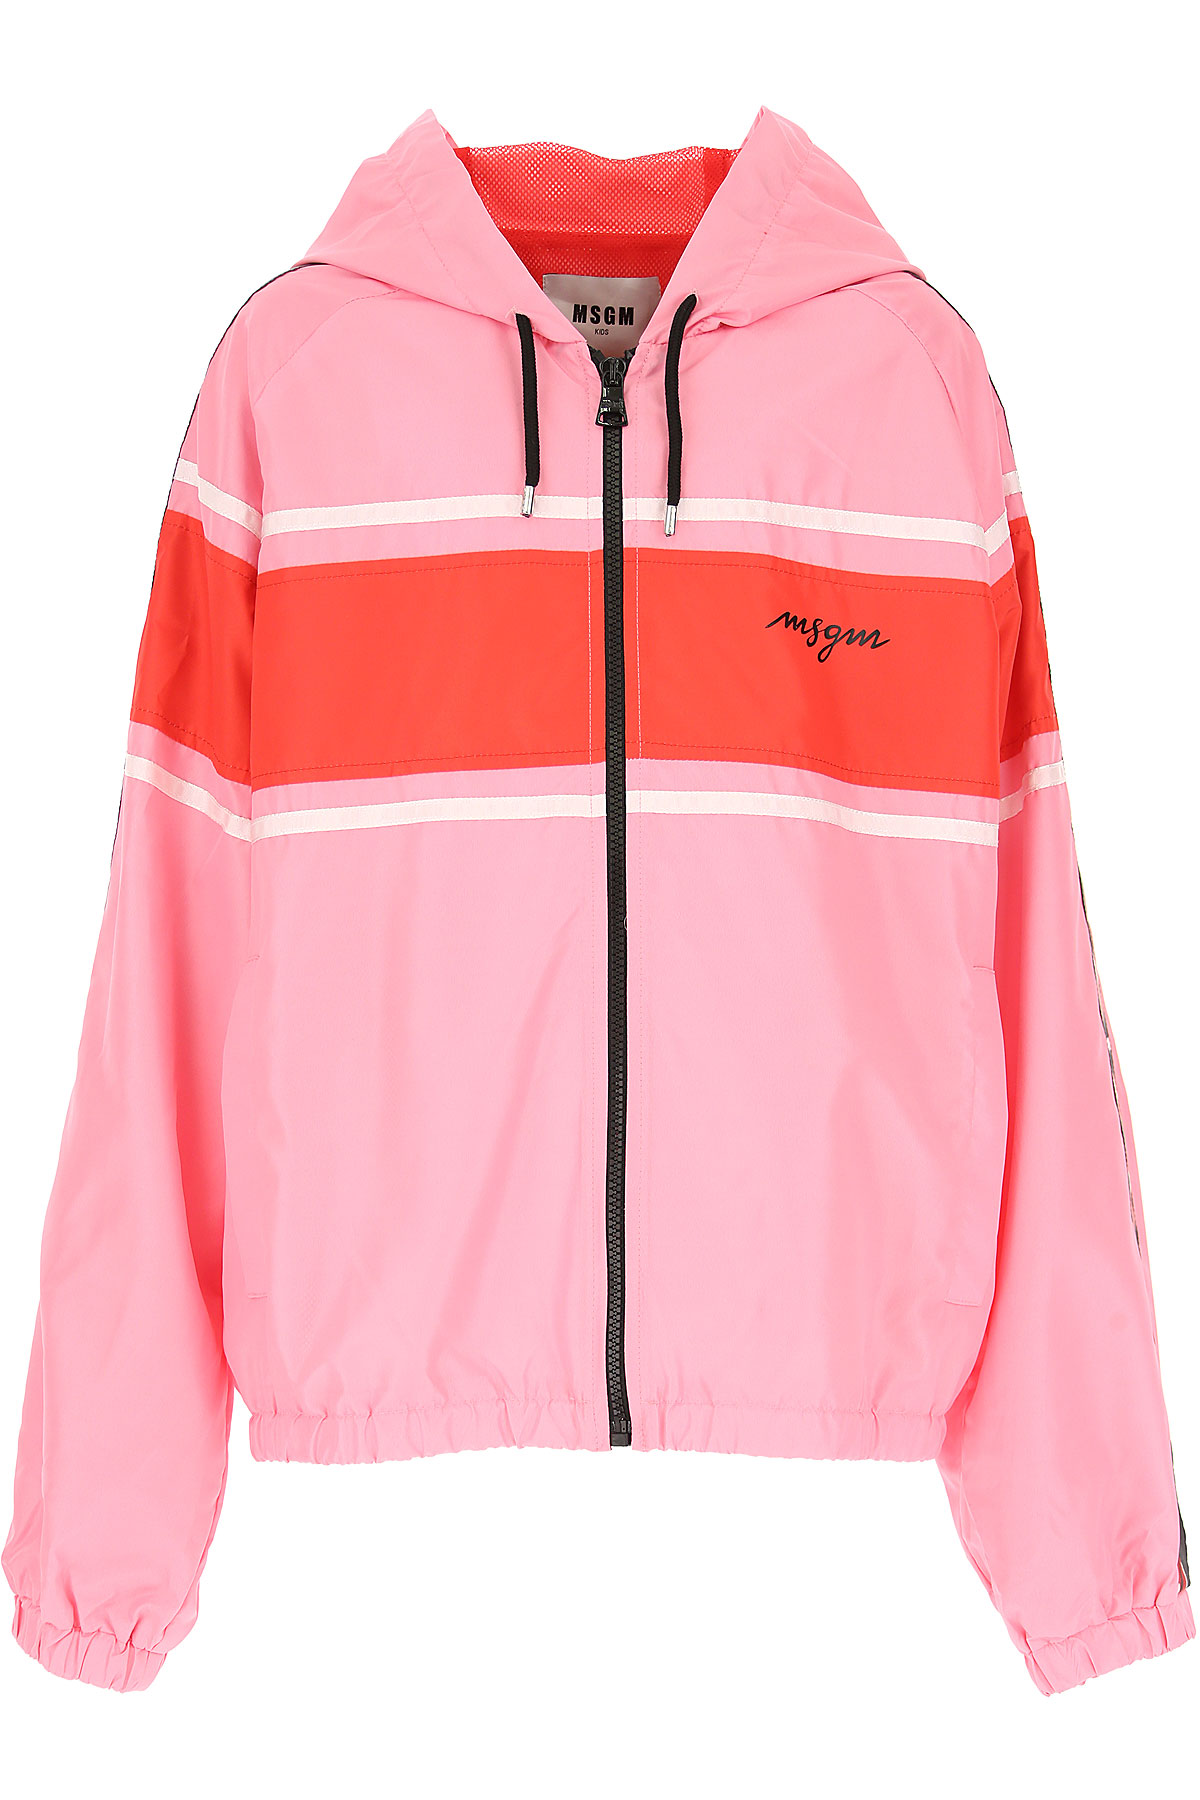 MSGM Kids Jacket for Girls, Pink, polyester, 2017, 10Y 14Y